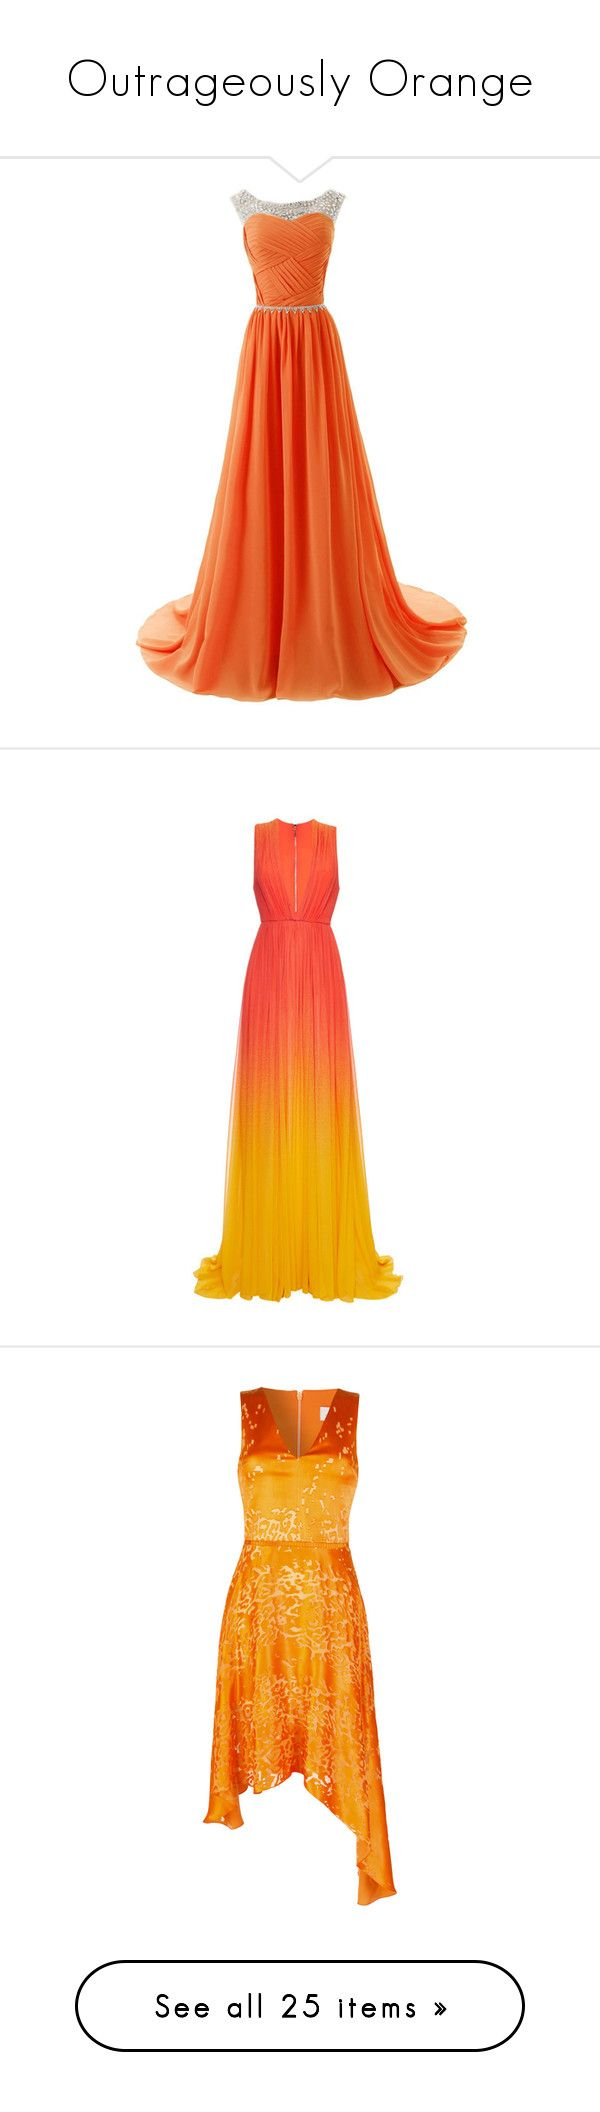 """Outrageously Orange"" by disneydressing ❤ liked on Polyvore featuring dresses, gowns, long dresses, bridesmaid dresses, beaded prom dresses, orange dress, long prom dresses, vestidos, maxi dress and red"